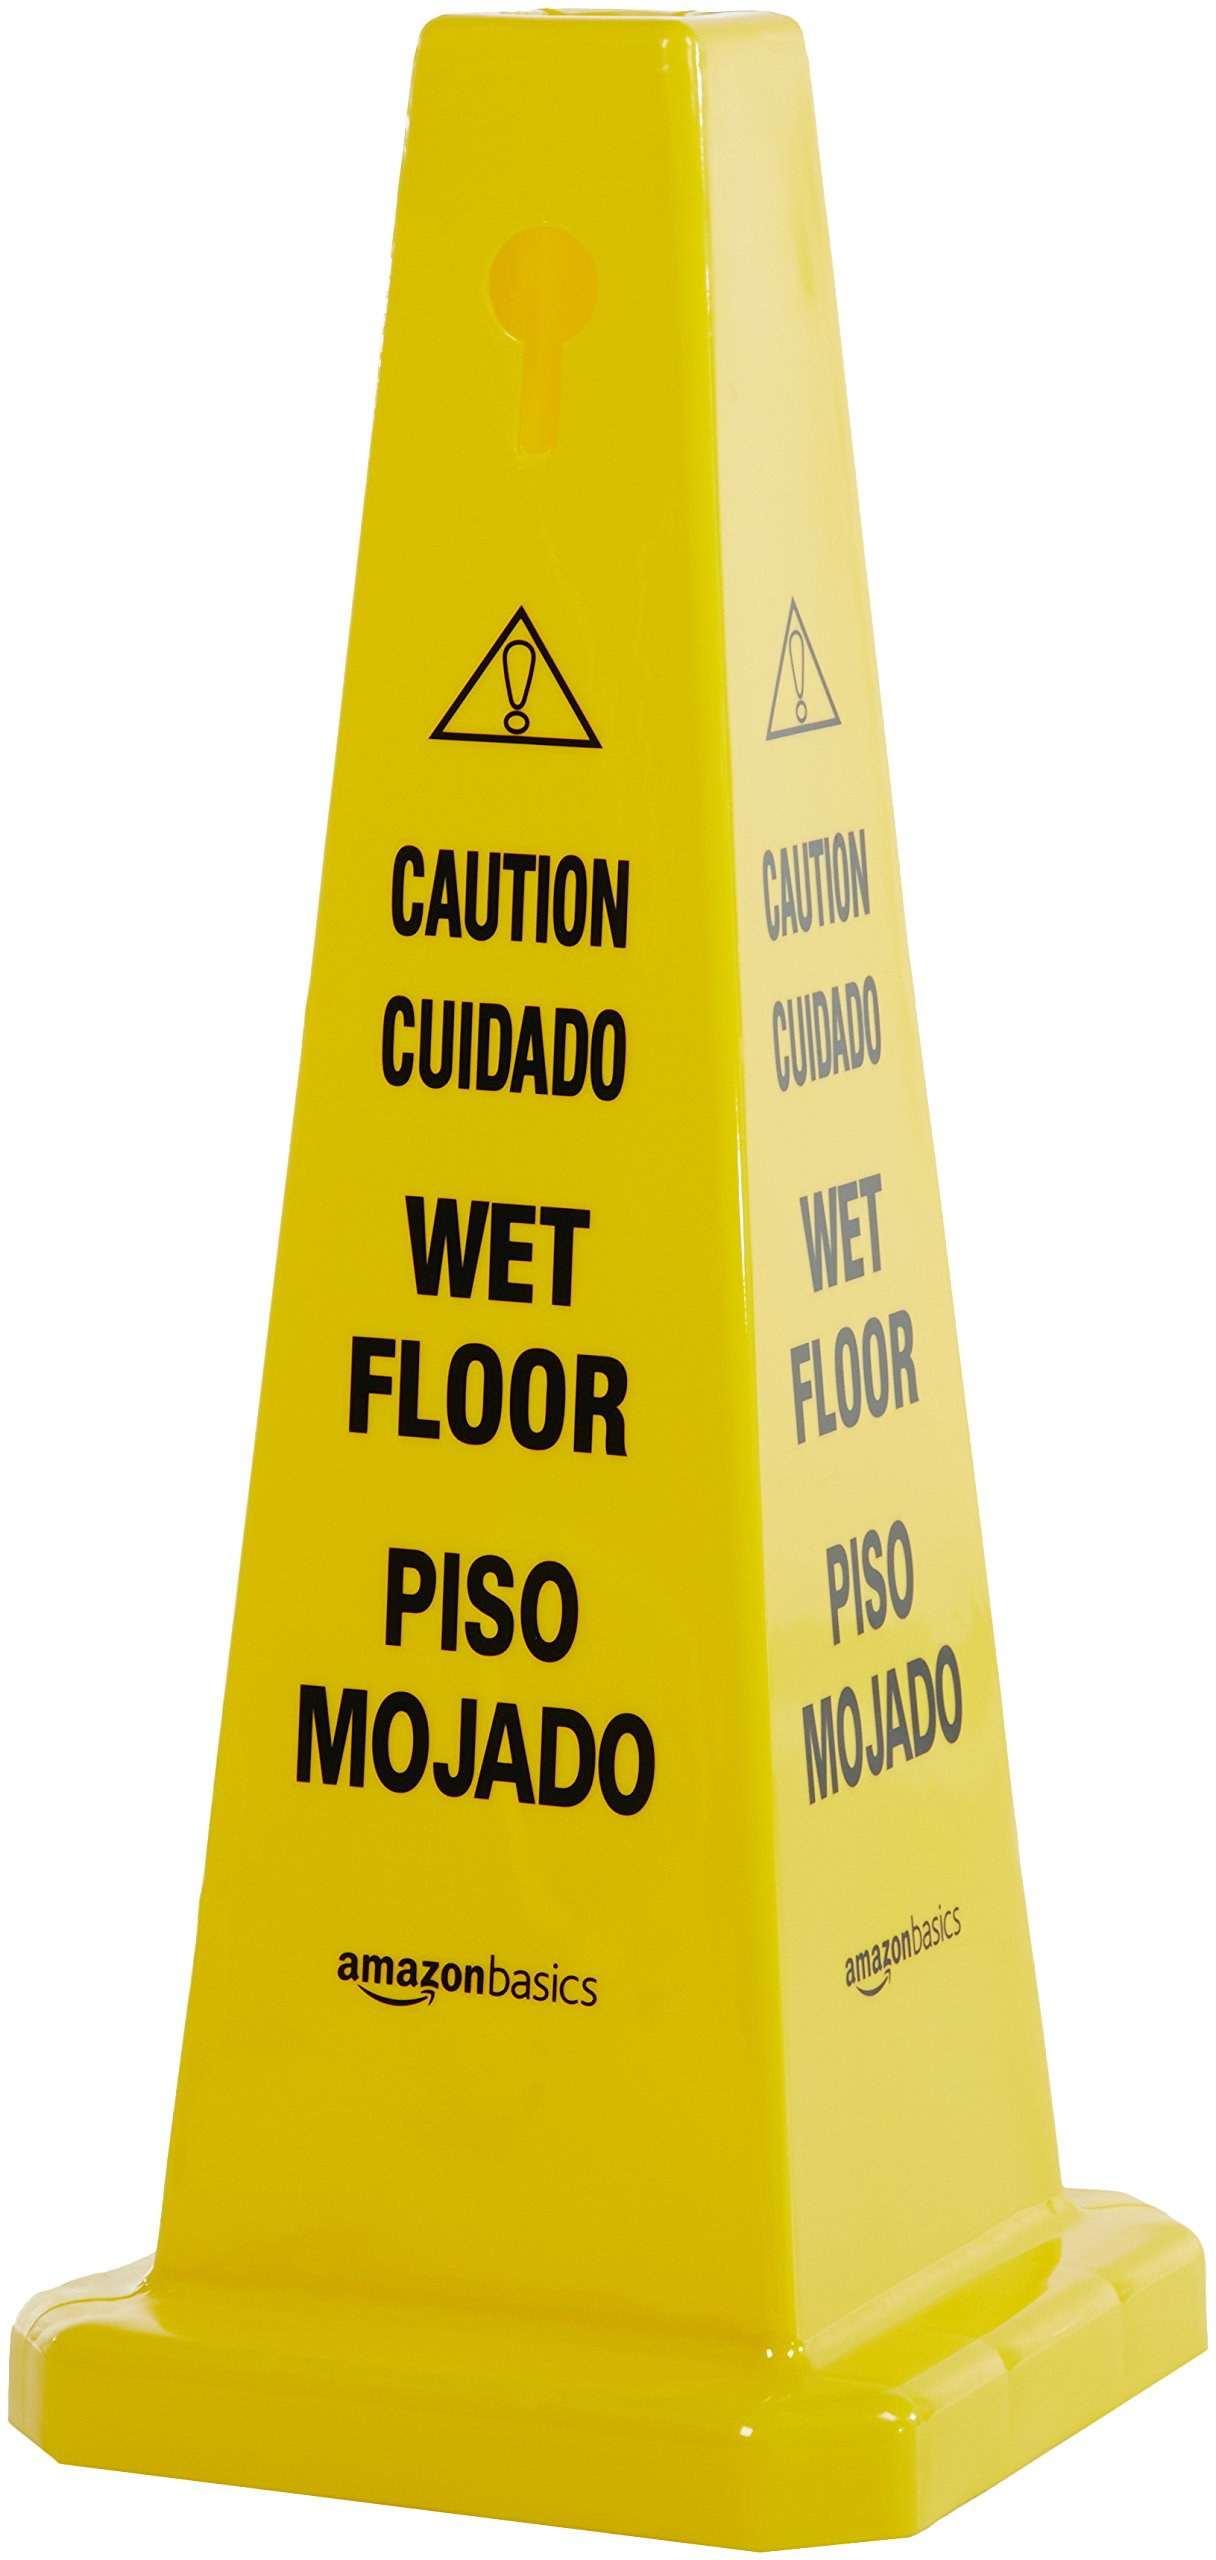 AmazonBasics Floor Safety Cone, 25-3/4-Inch - Caution Wet Floor, Bilingual - 6-Pack